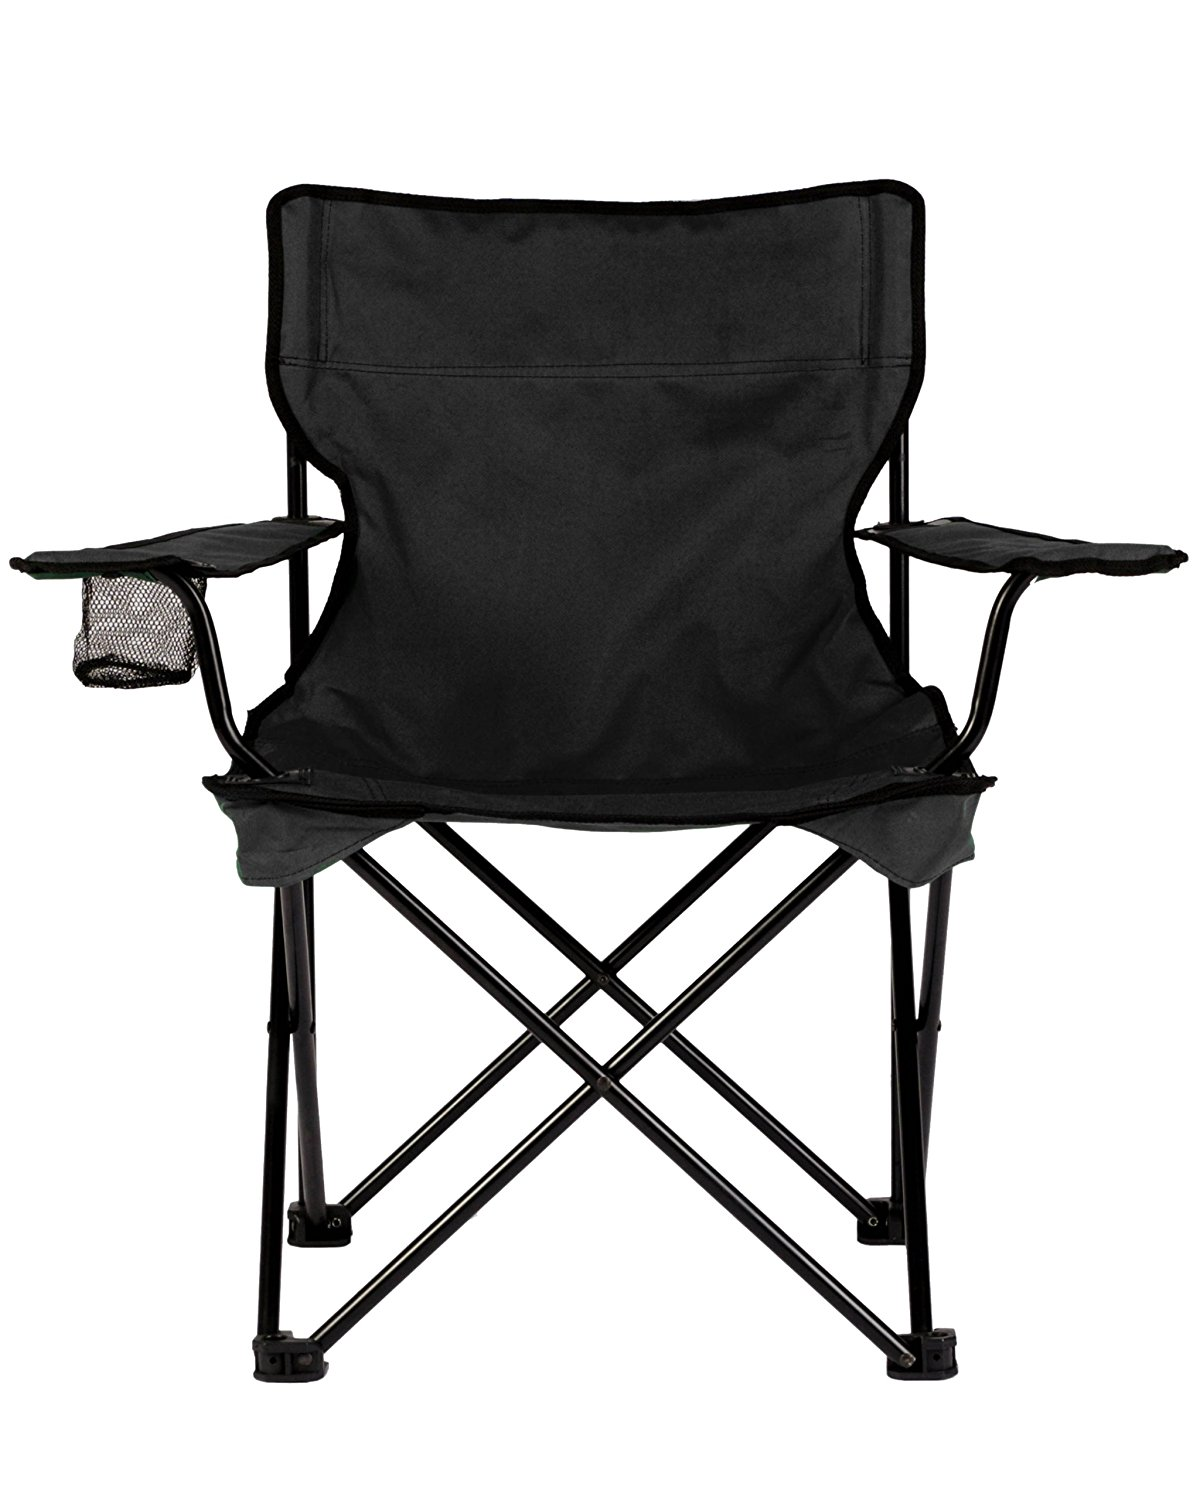 Compact amazon.com : travelchair c-series rider chair, black : camping chairs :  sports kcwvfrw